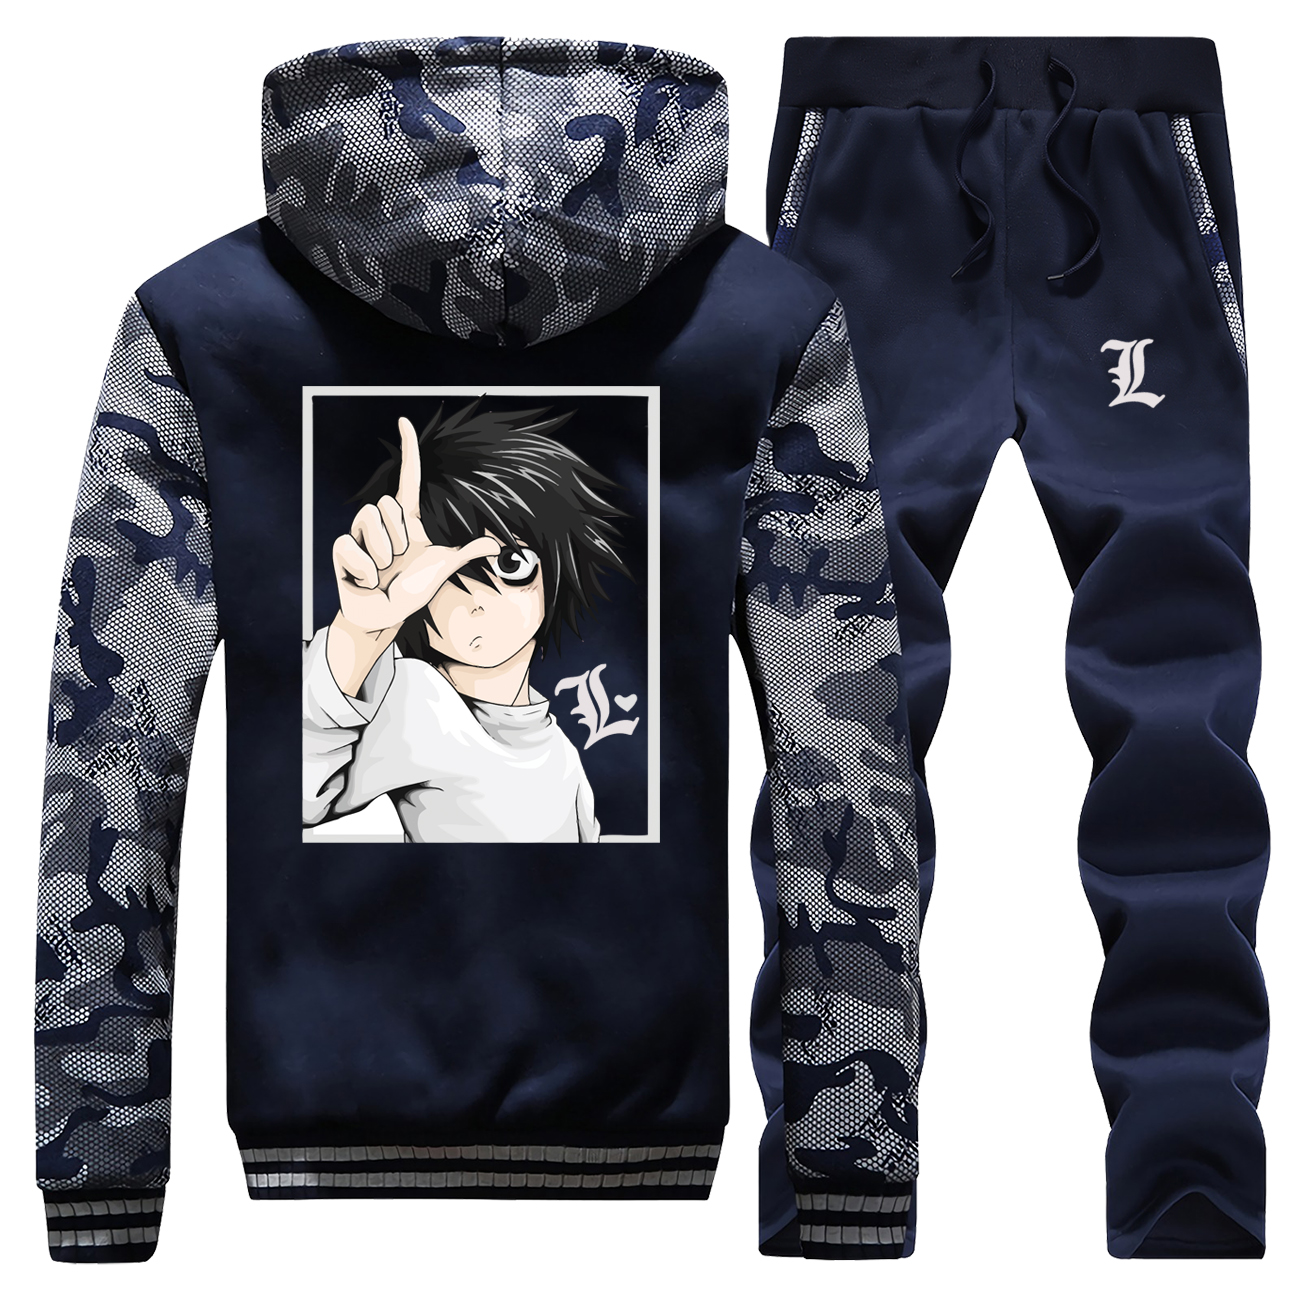 Winter New 2019 Cartoon Mens Hoodie Japan Anime Death Note Camouflage Casual Hoodies Coat Thick Streetwear+2 Piece Set Pants